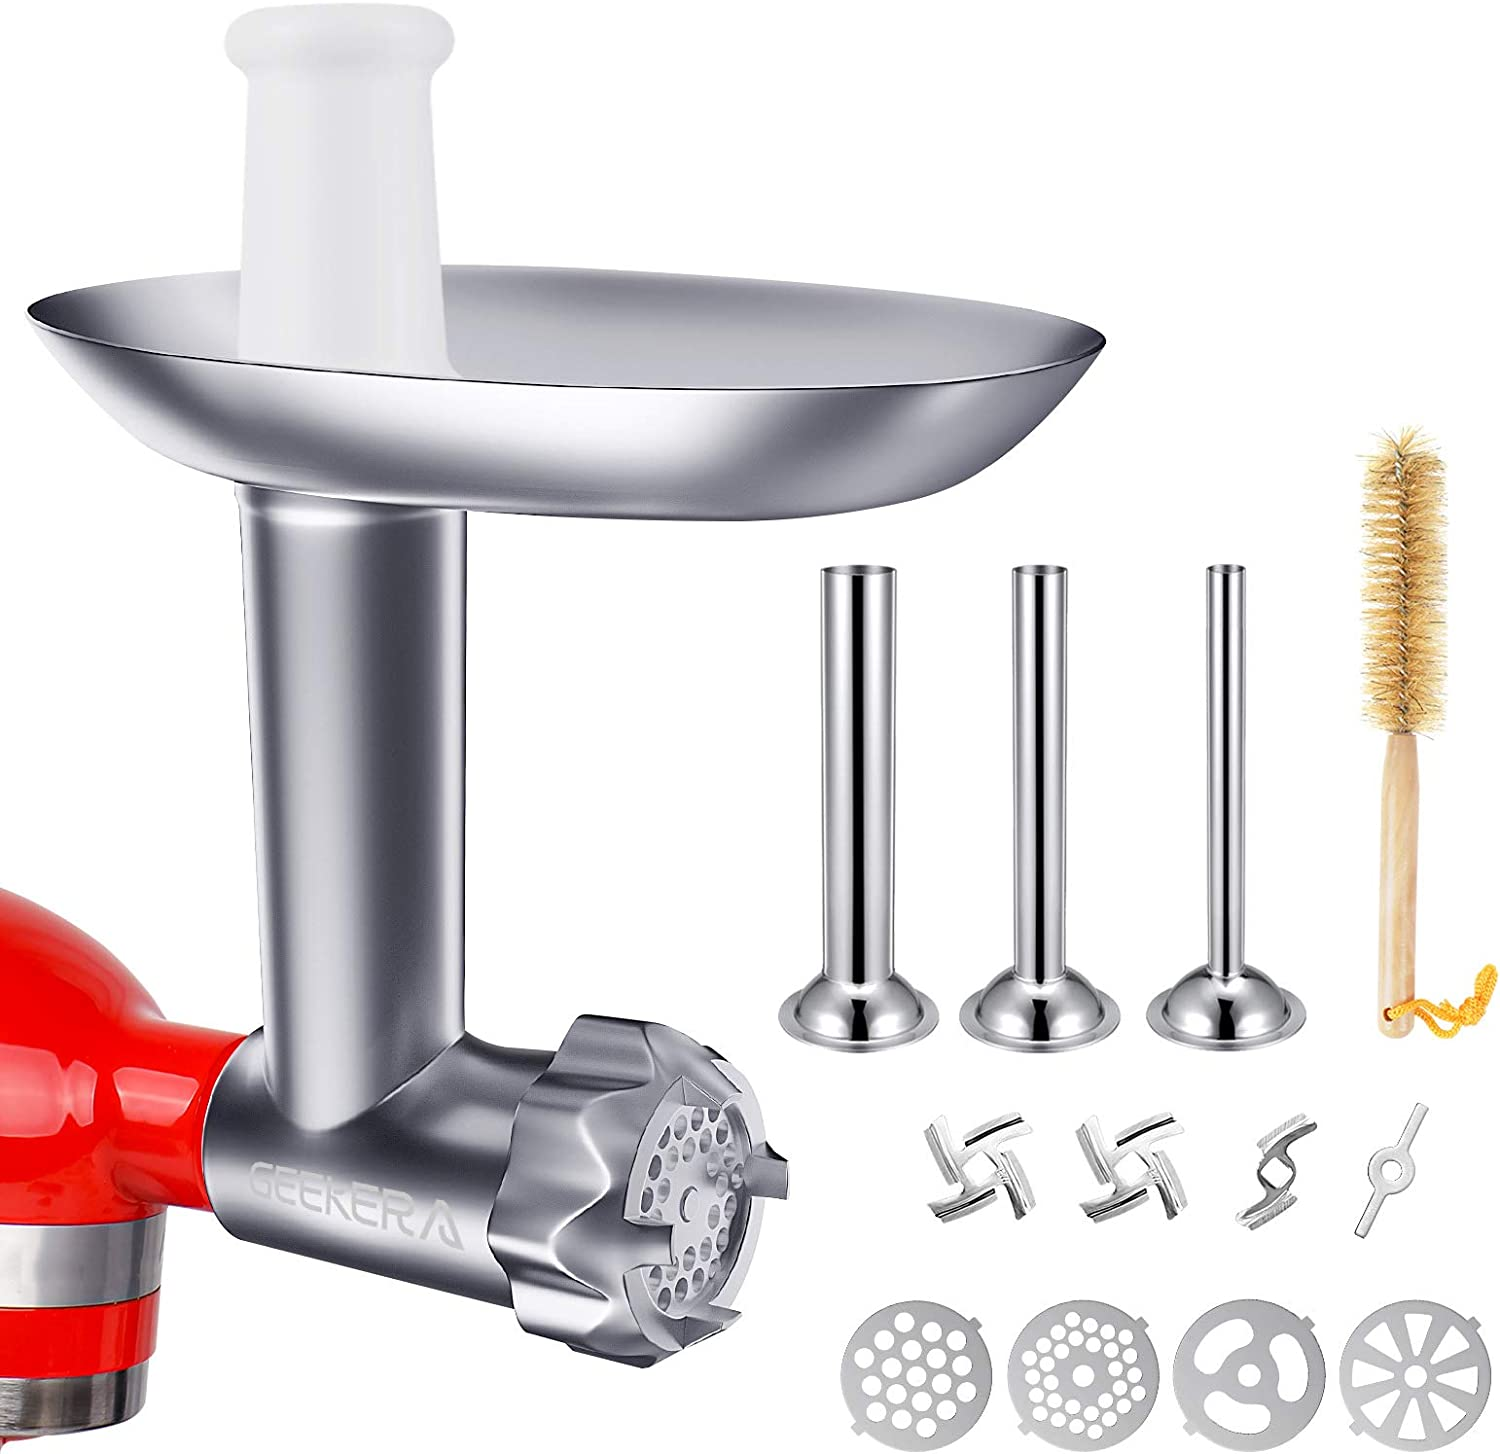 Metal Food Grinder Attachments for KitchenAid Stand Mixers, GEEKERA Durable Meat Grinder Sausage Stuffer Attachment Compatible with KitchenAid, Includes 3 Sausage Stuffer Tubes